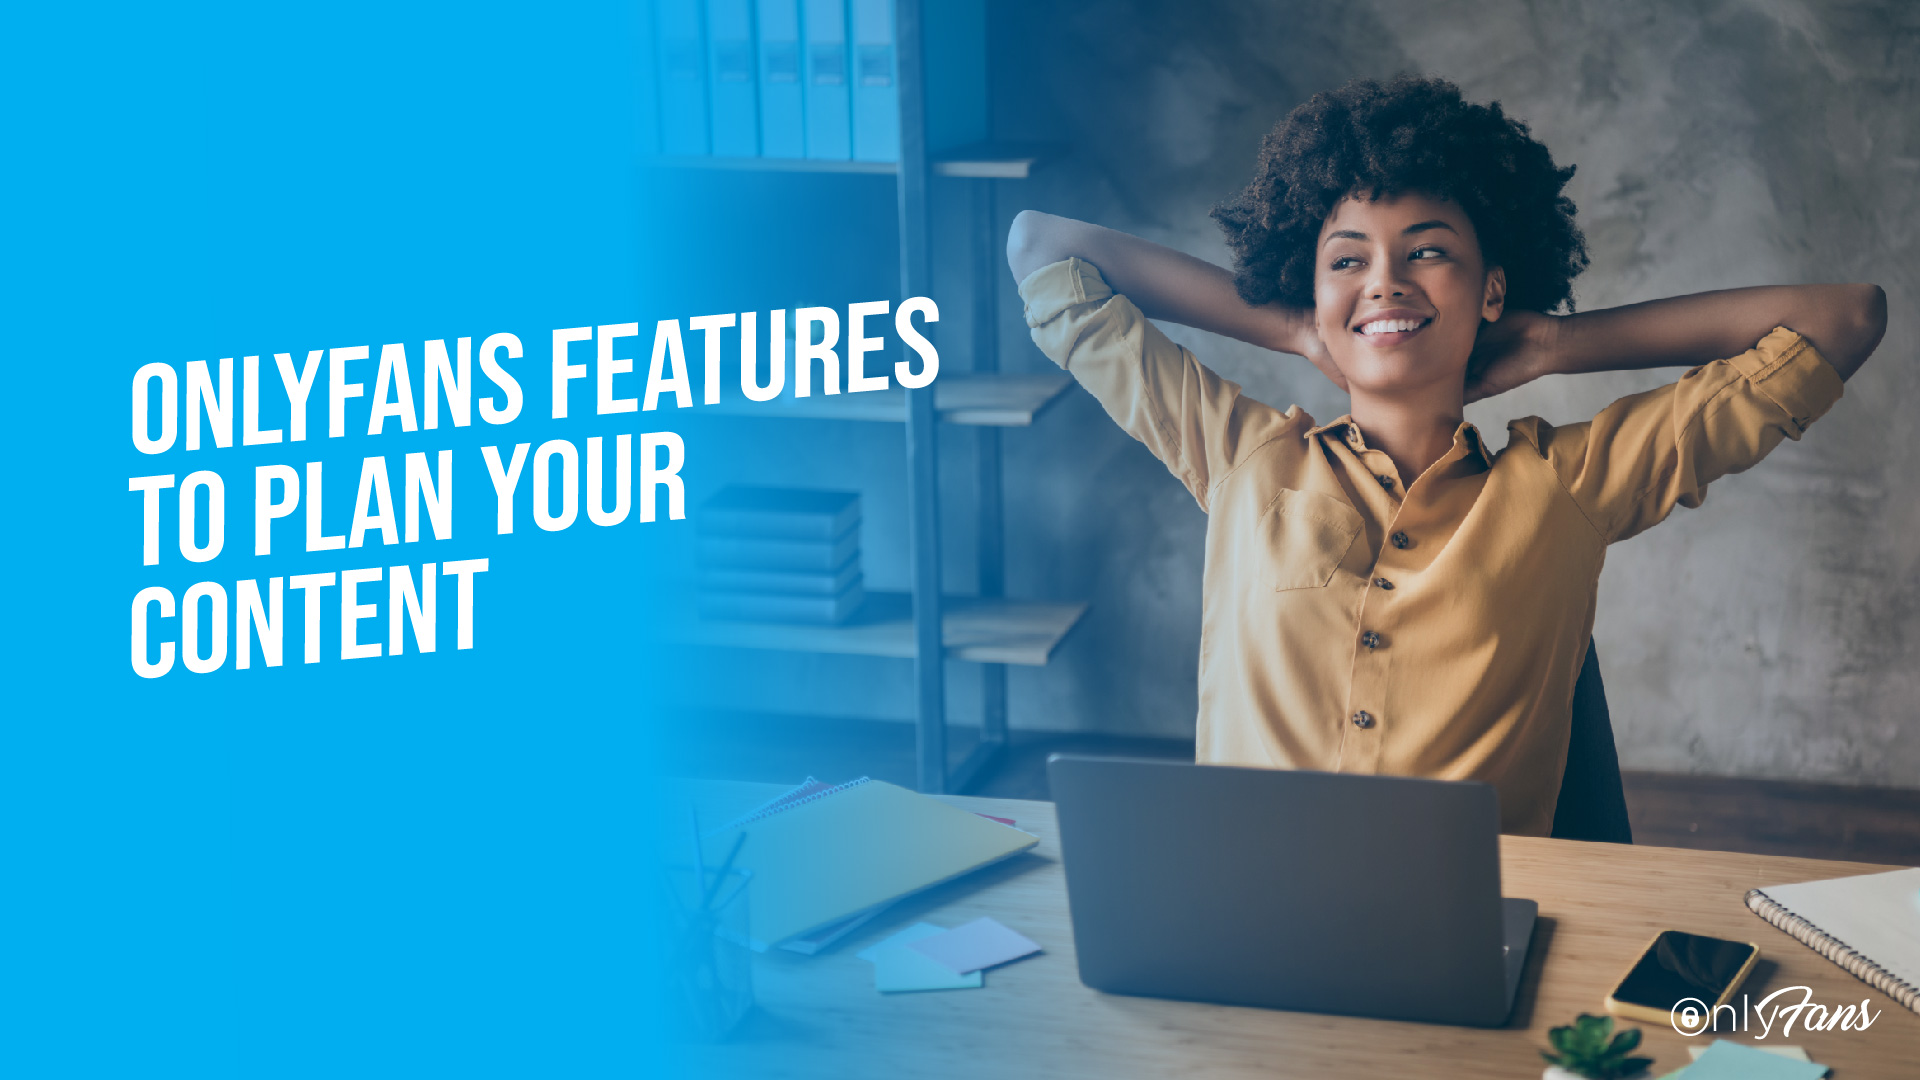 OnlyFans features to plan your content